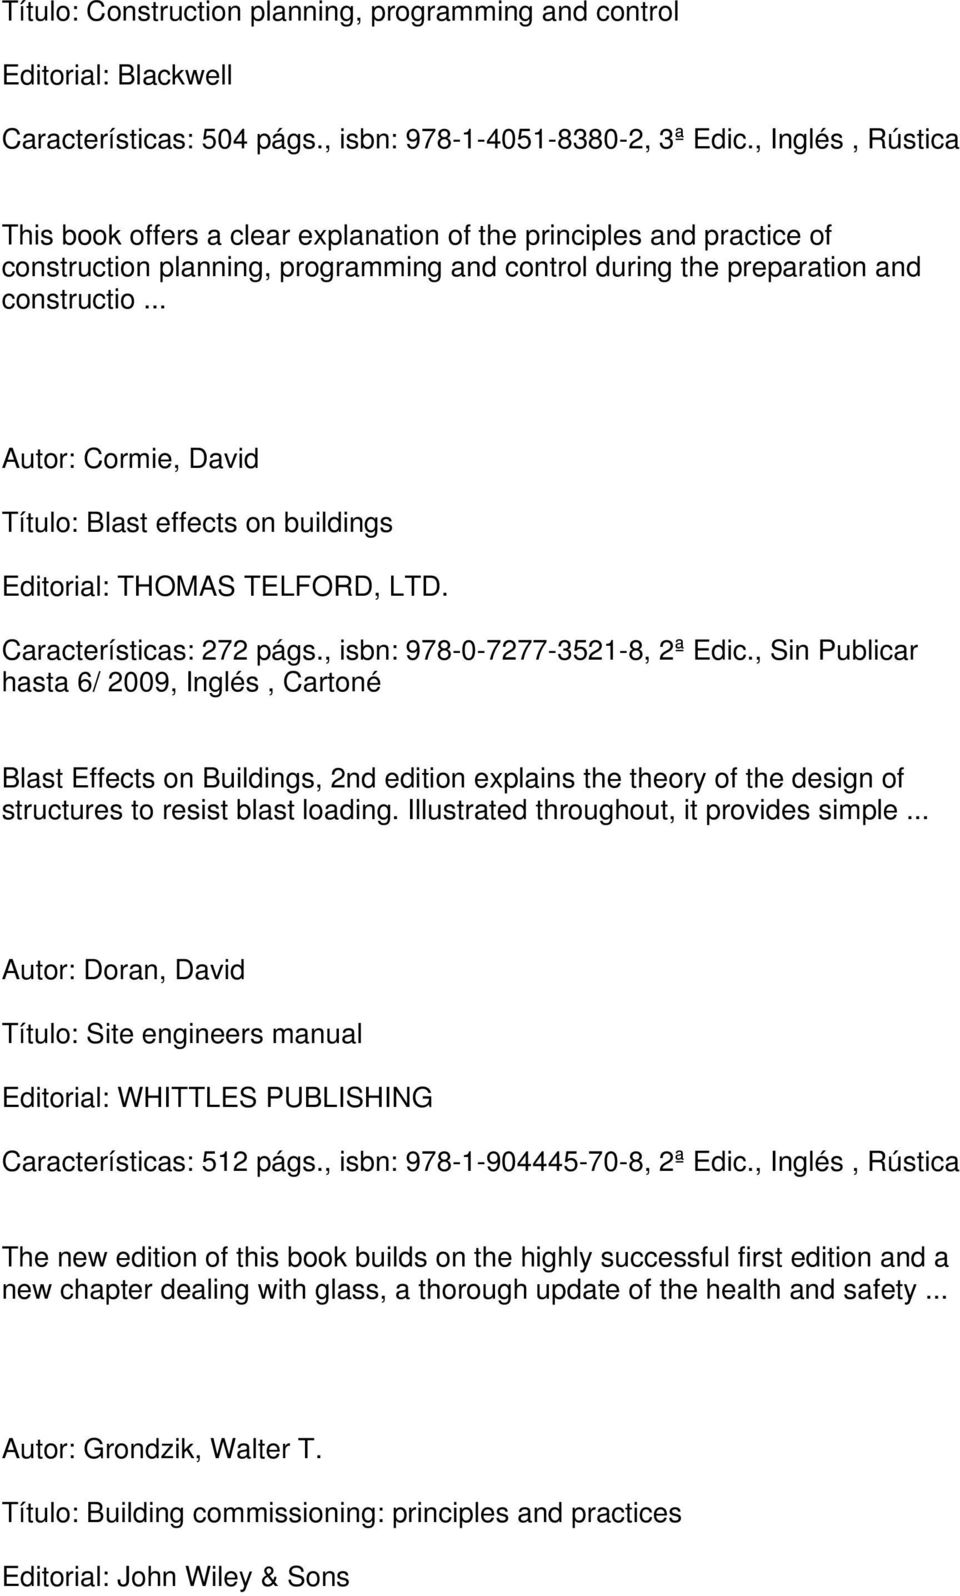 Título: Blast effects on buildings Editorial: THOMAS TELFORD, LTD. Características: 272 págs., isbn: 978-0-7277-3521-8, 2ª Edic.